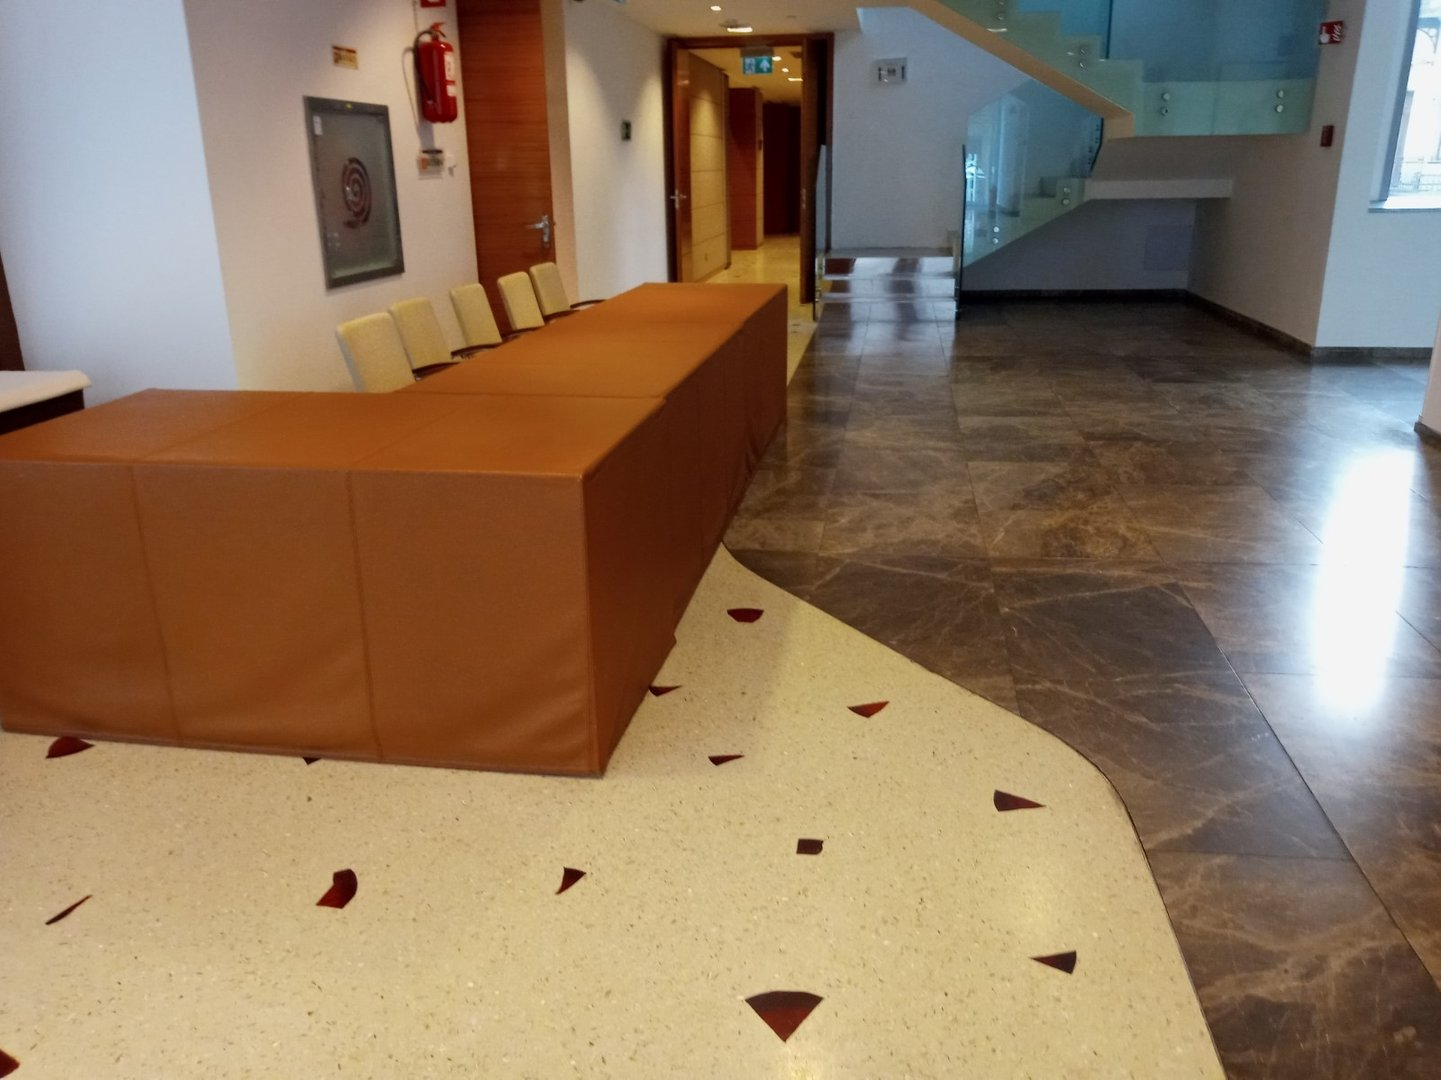 Accessibility of information or reception counter